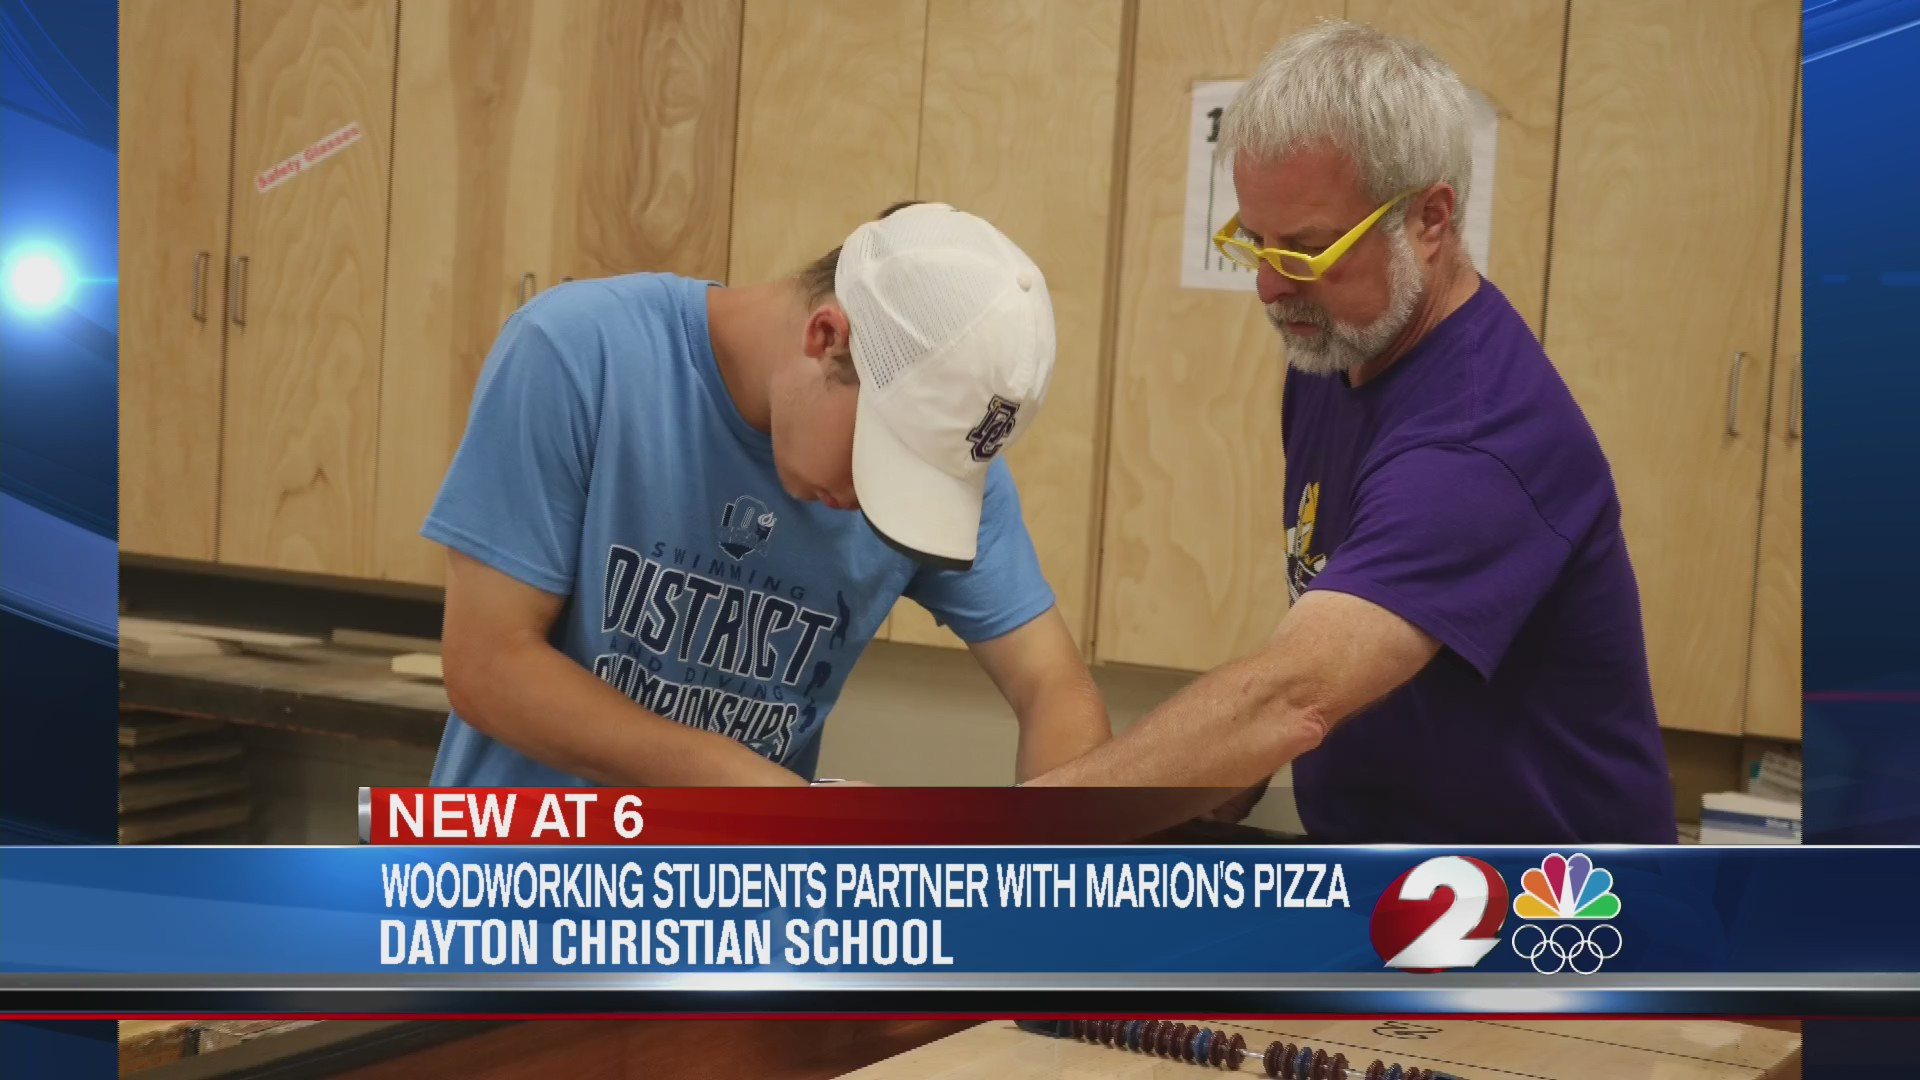 dayton christian woodworking students make pizza boards for